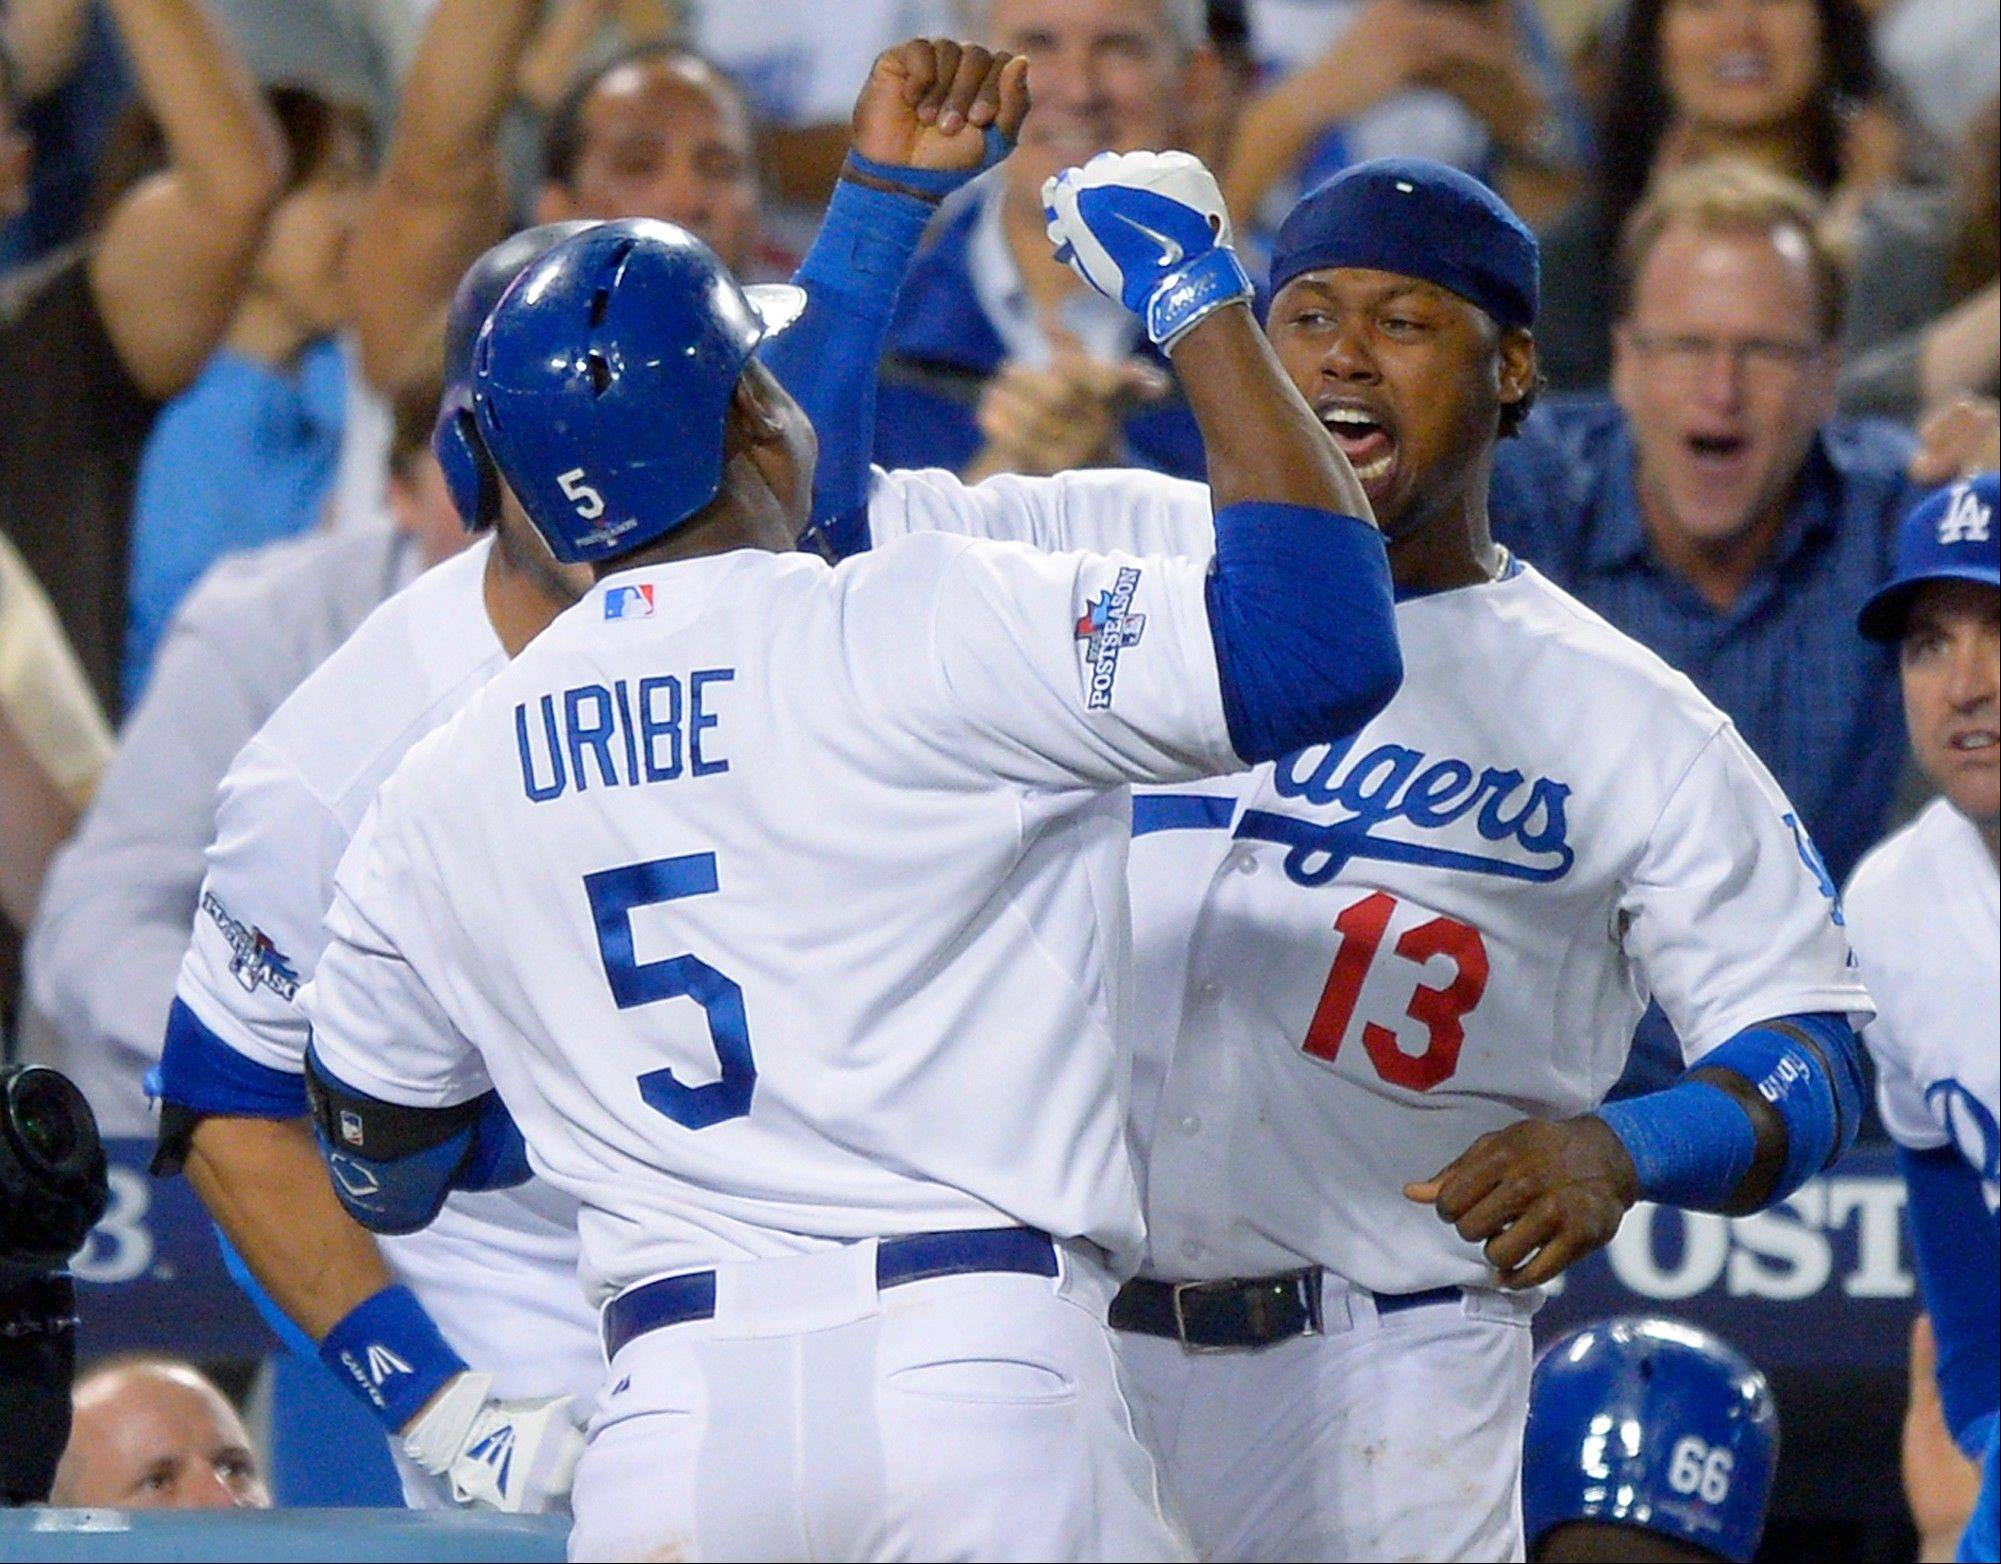 Dodgers win series against Braves